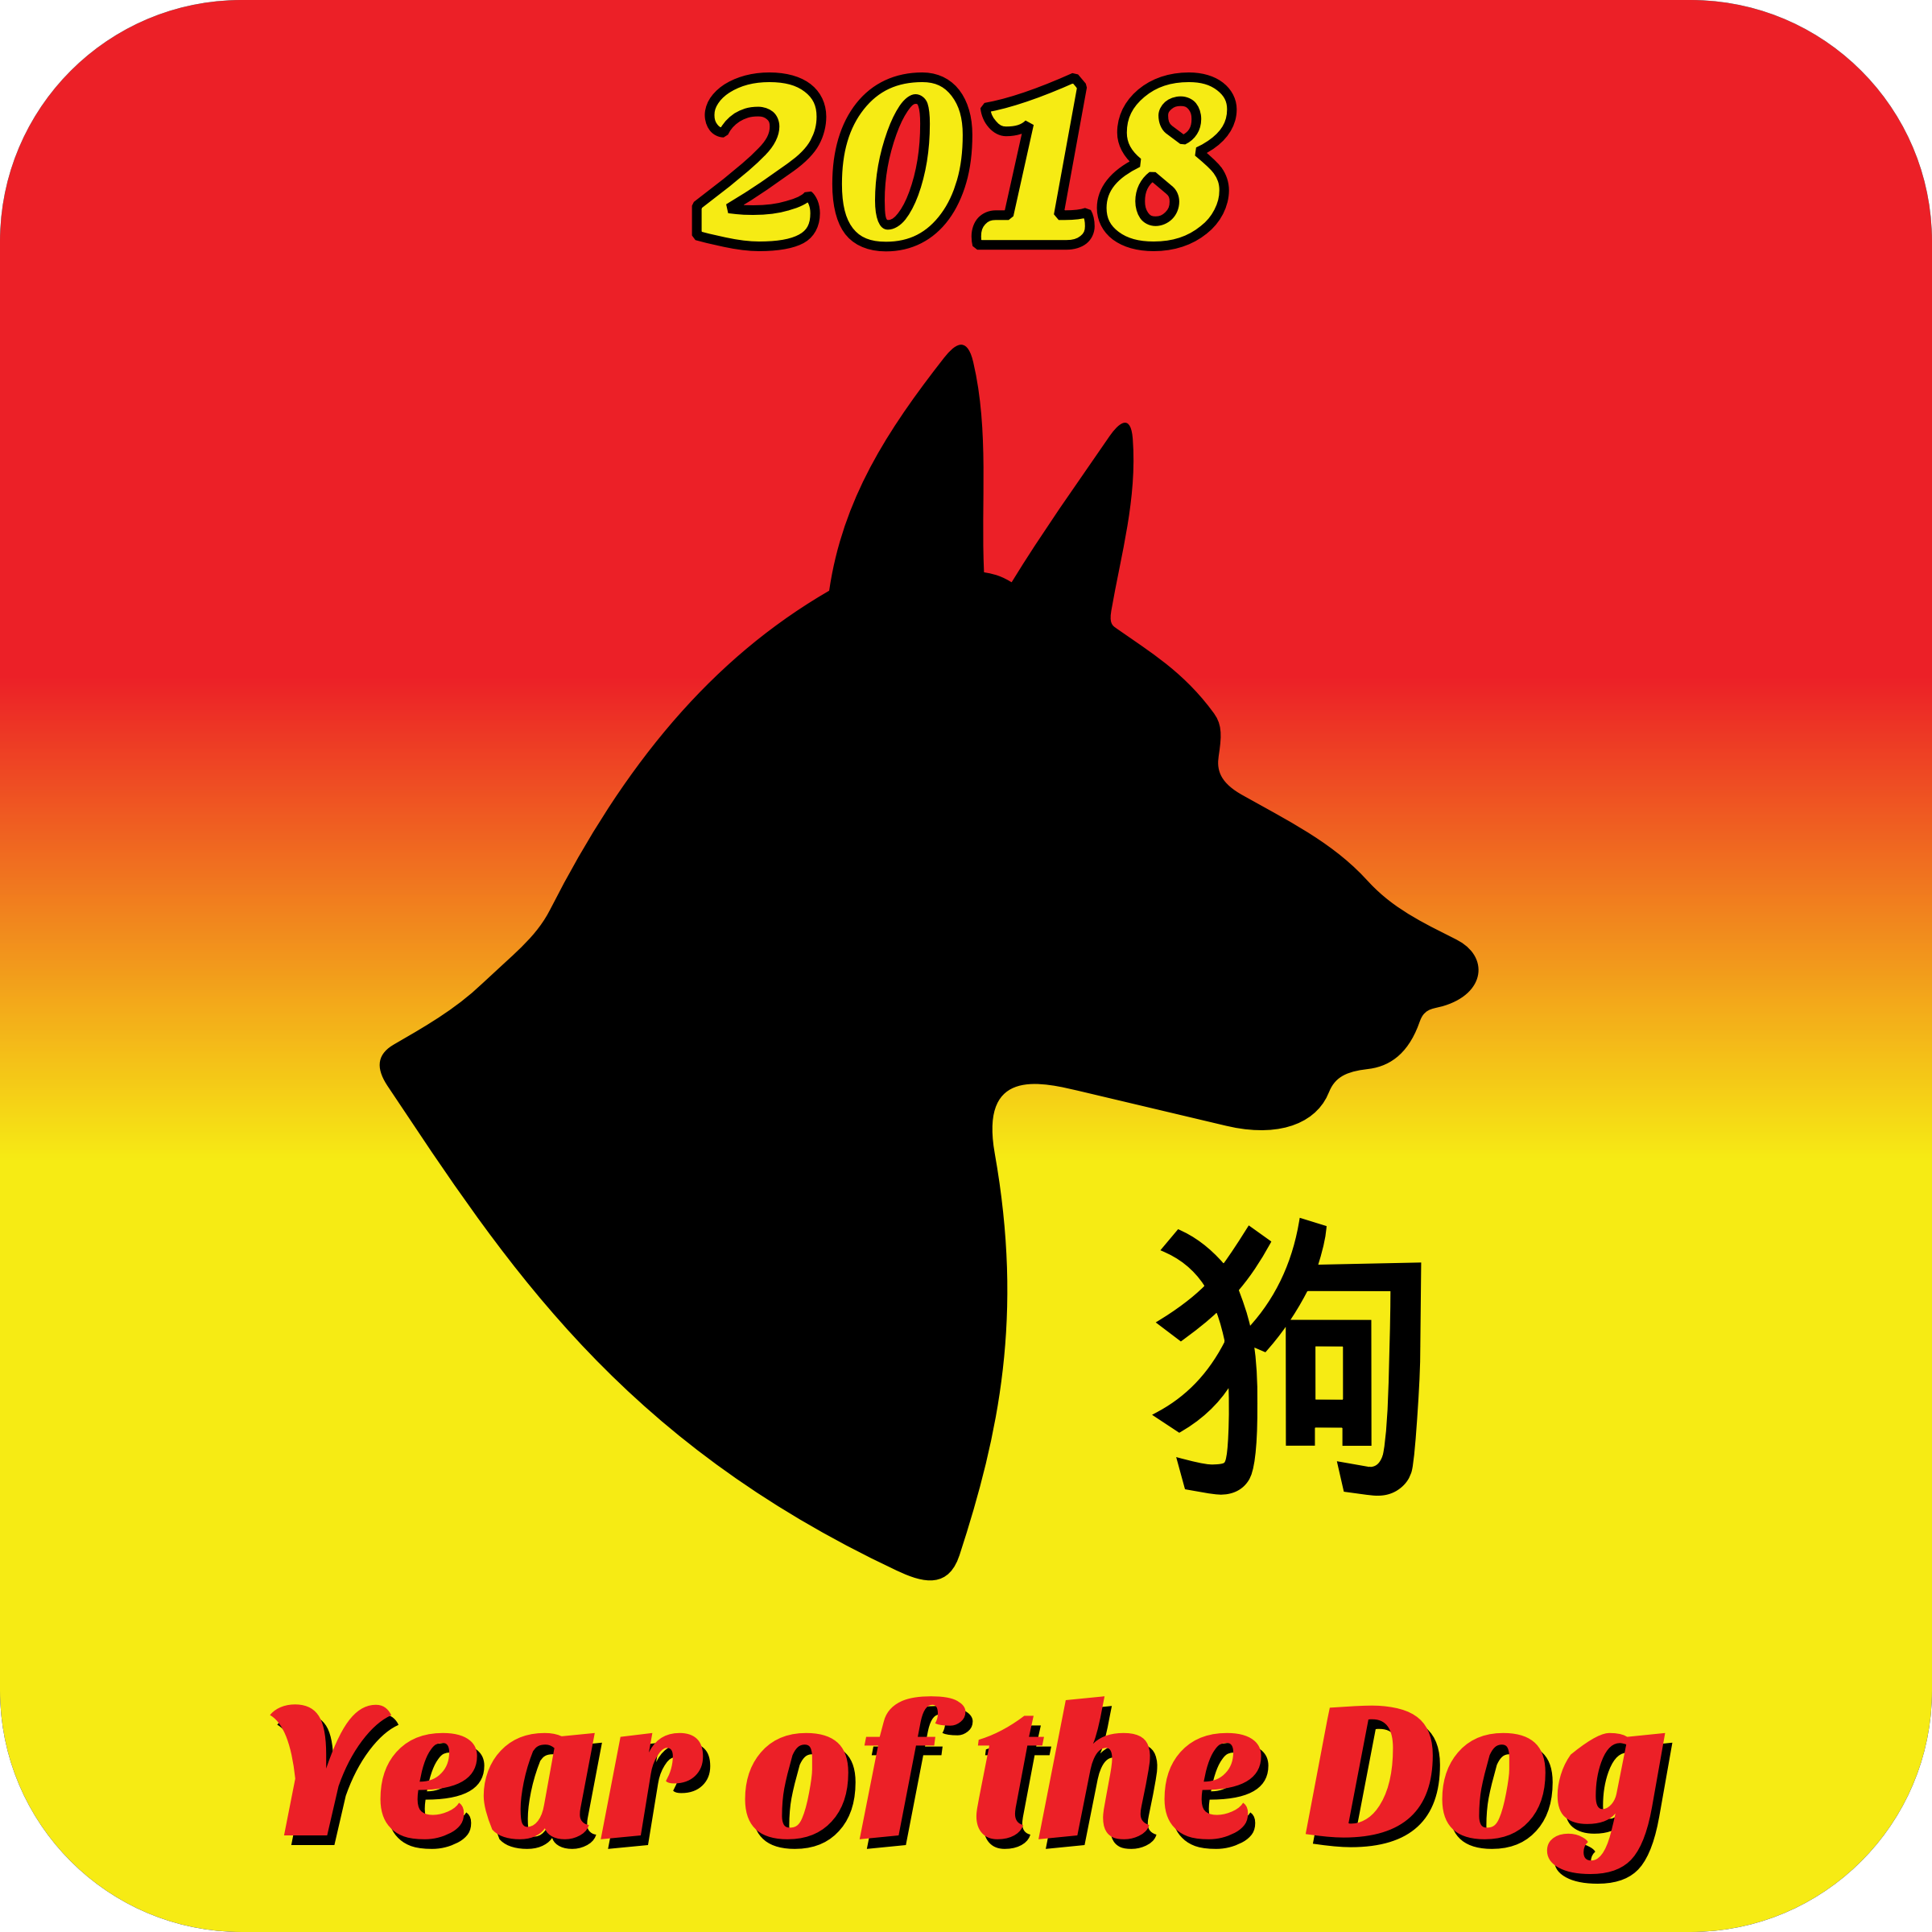 2018 Year of the Dog by JayNick